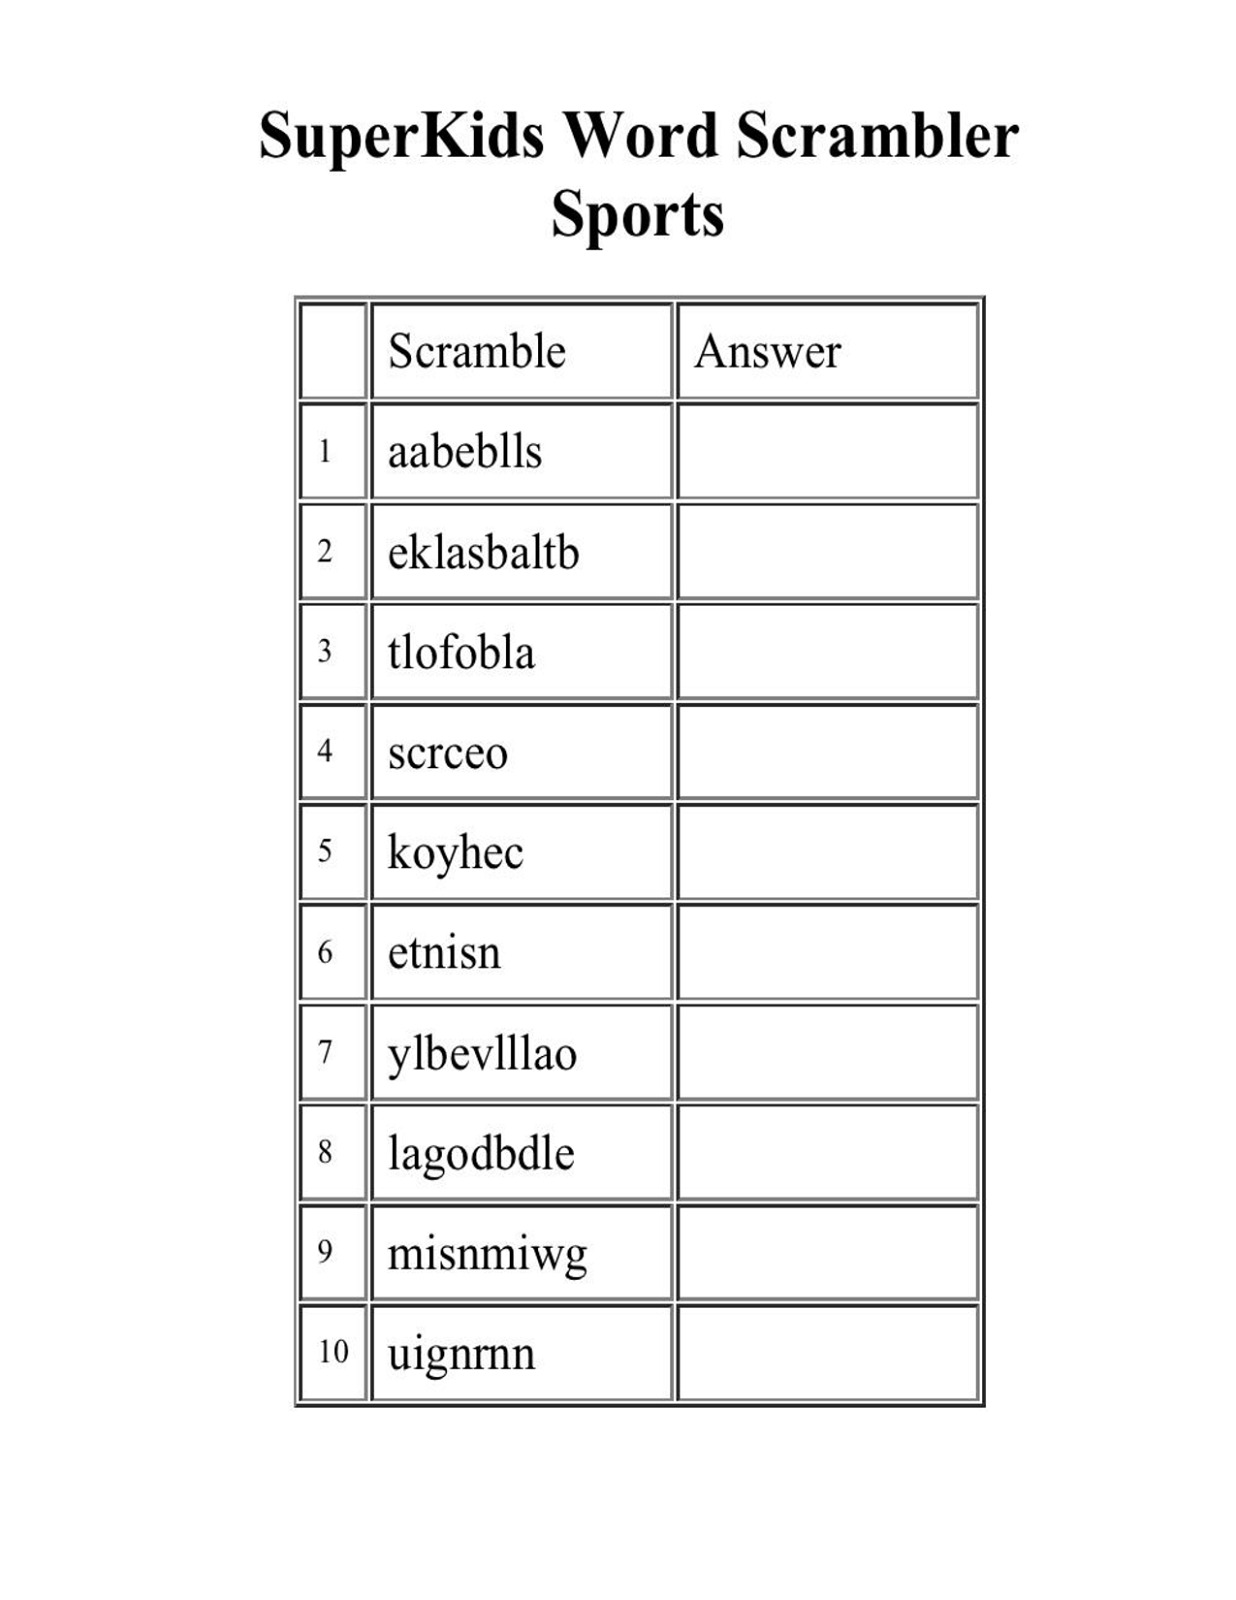 Word Scramble Worksheet Maker : Usable scrambled words worksheets with answers goodsnyc